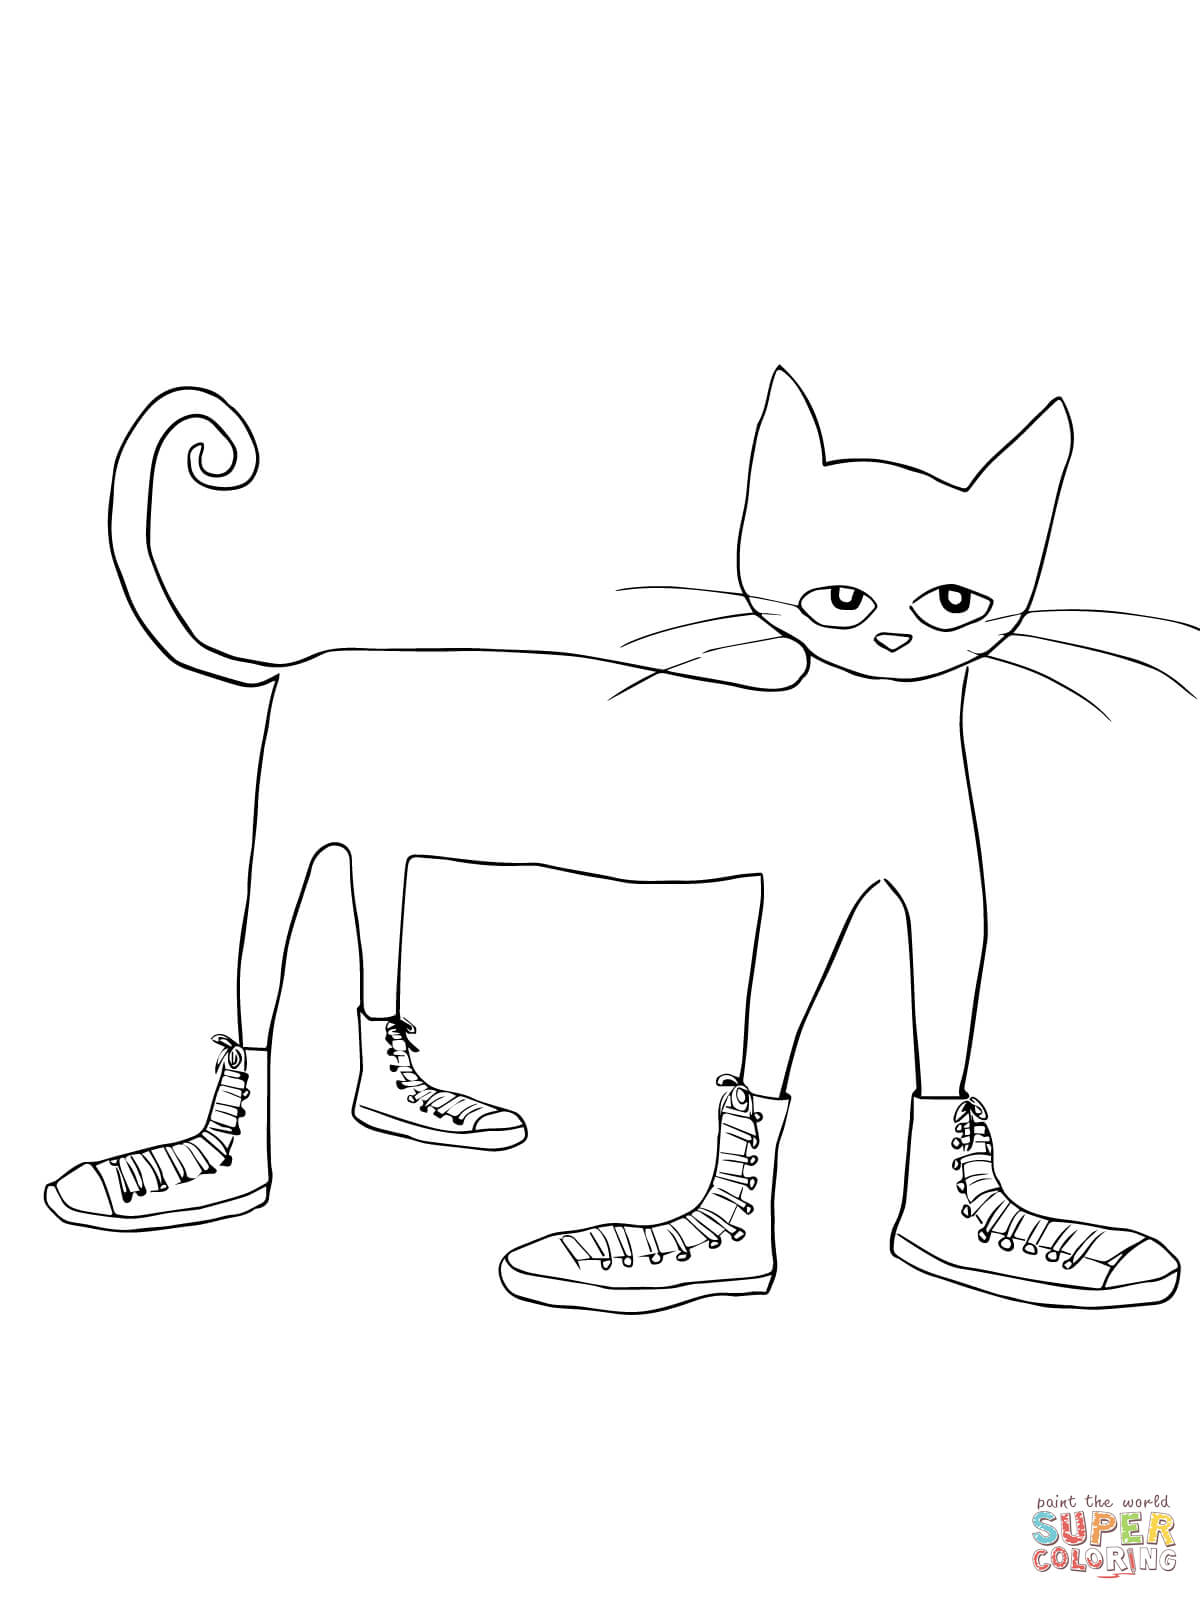 pete the cat shoe printable pete the cat white shoes printable bing images pete pete printable cat shoe the